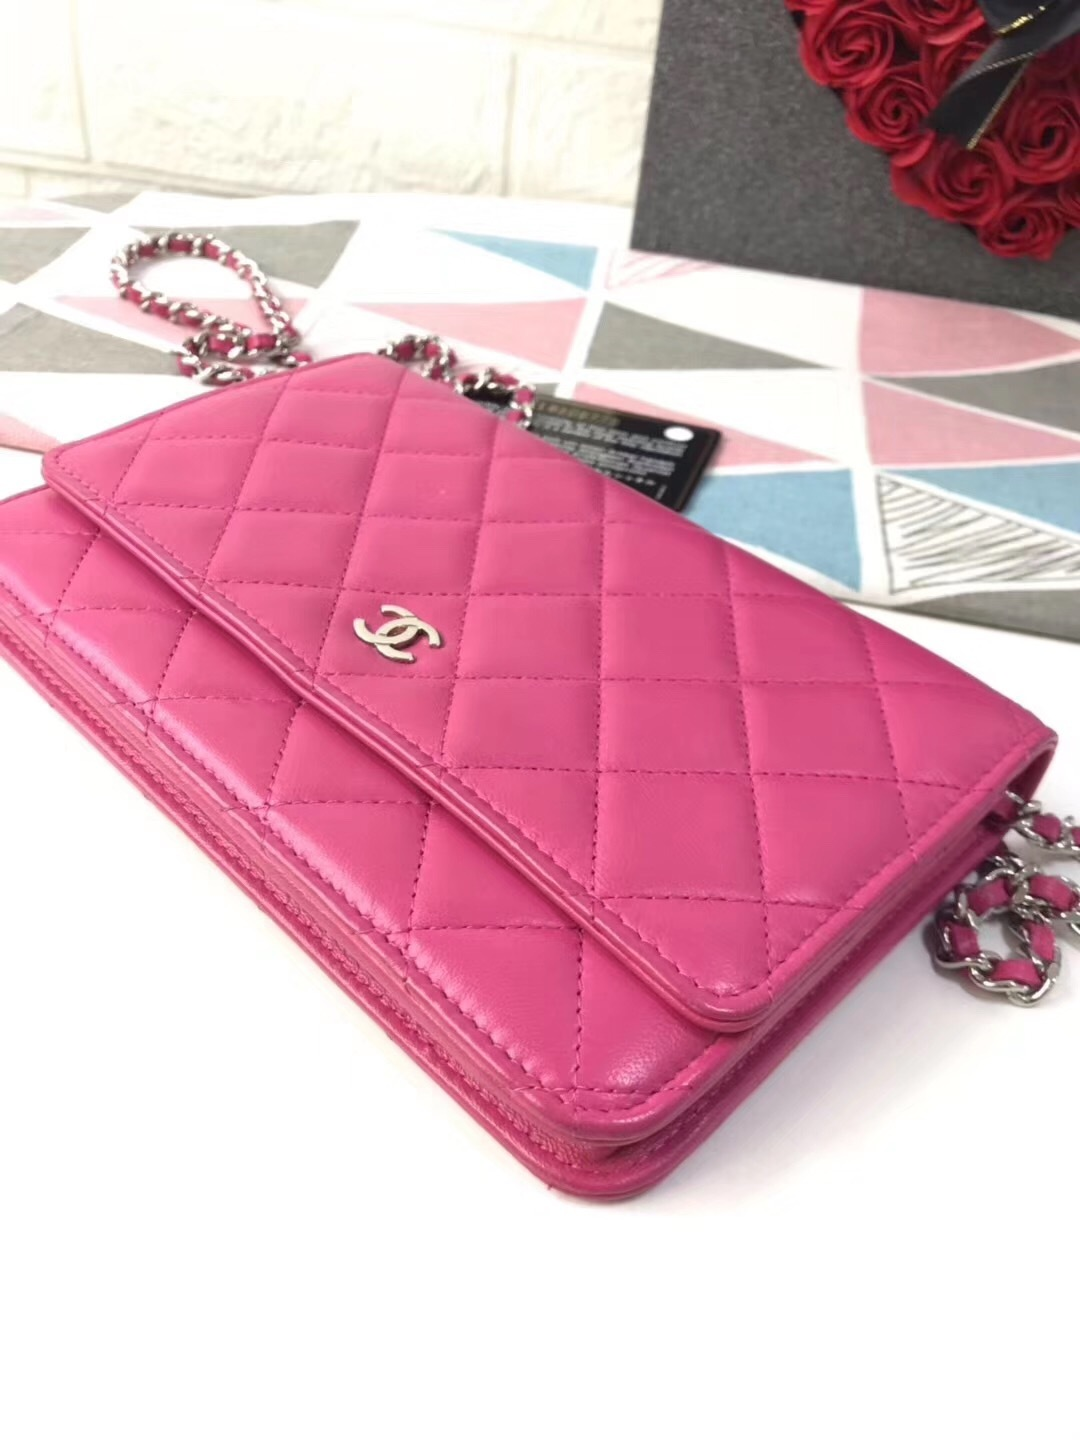 100% AUTH CHANEL WOC Quilted Lambskin PINK Wallet on Chain Flap Bag SHW image 4